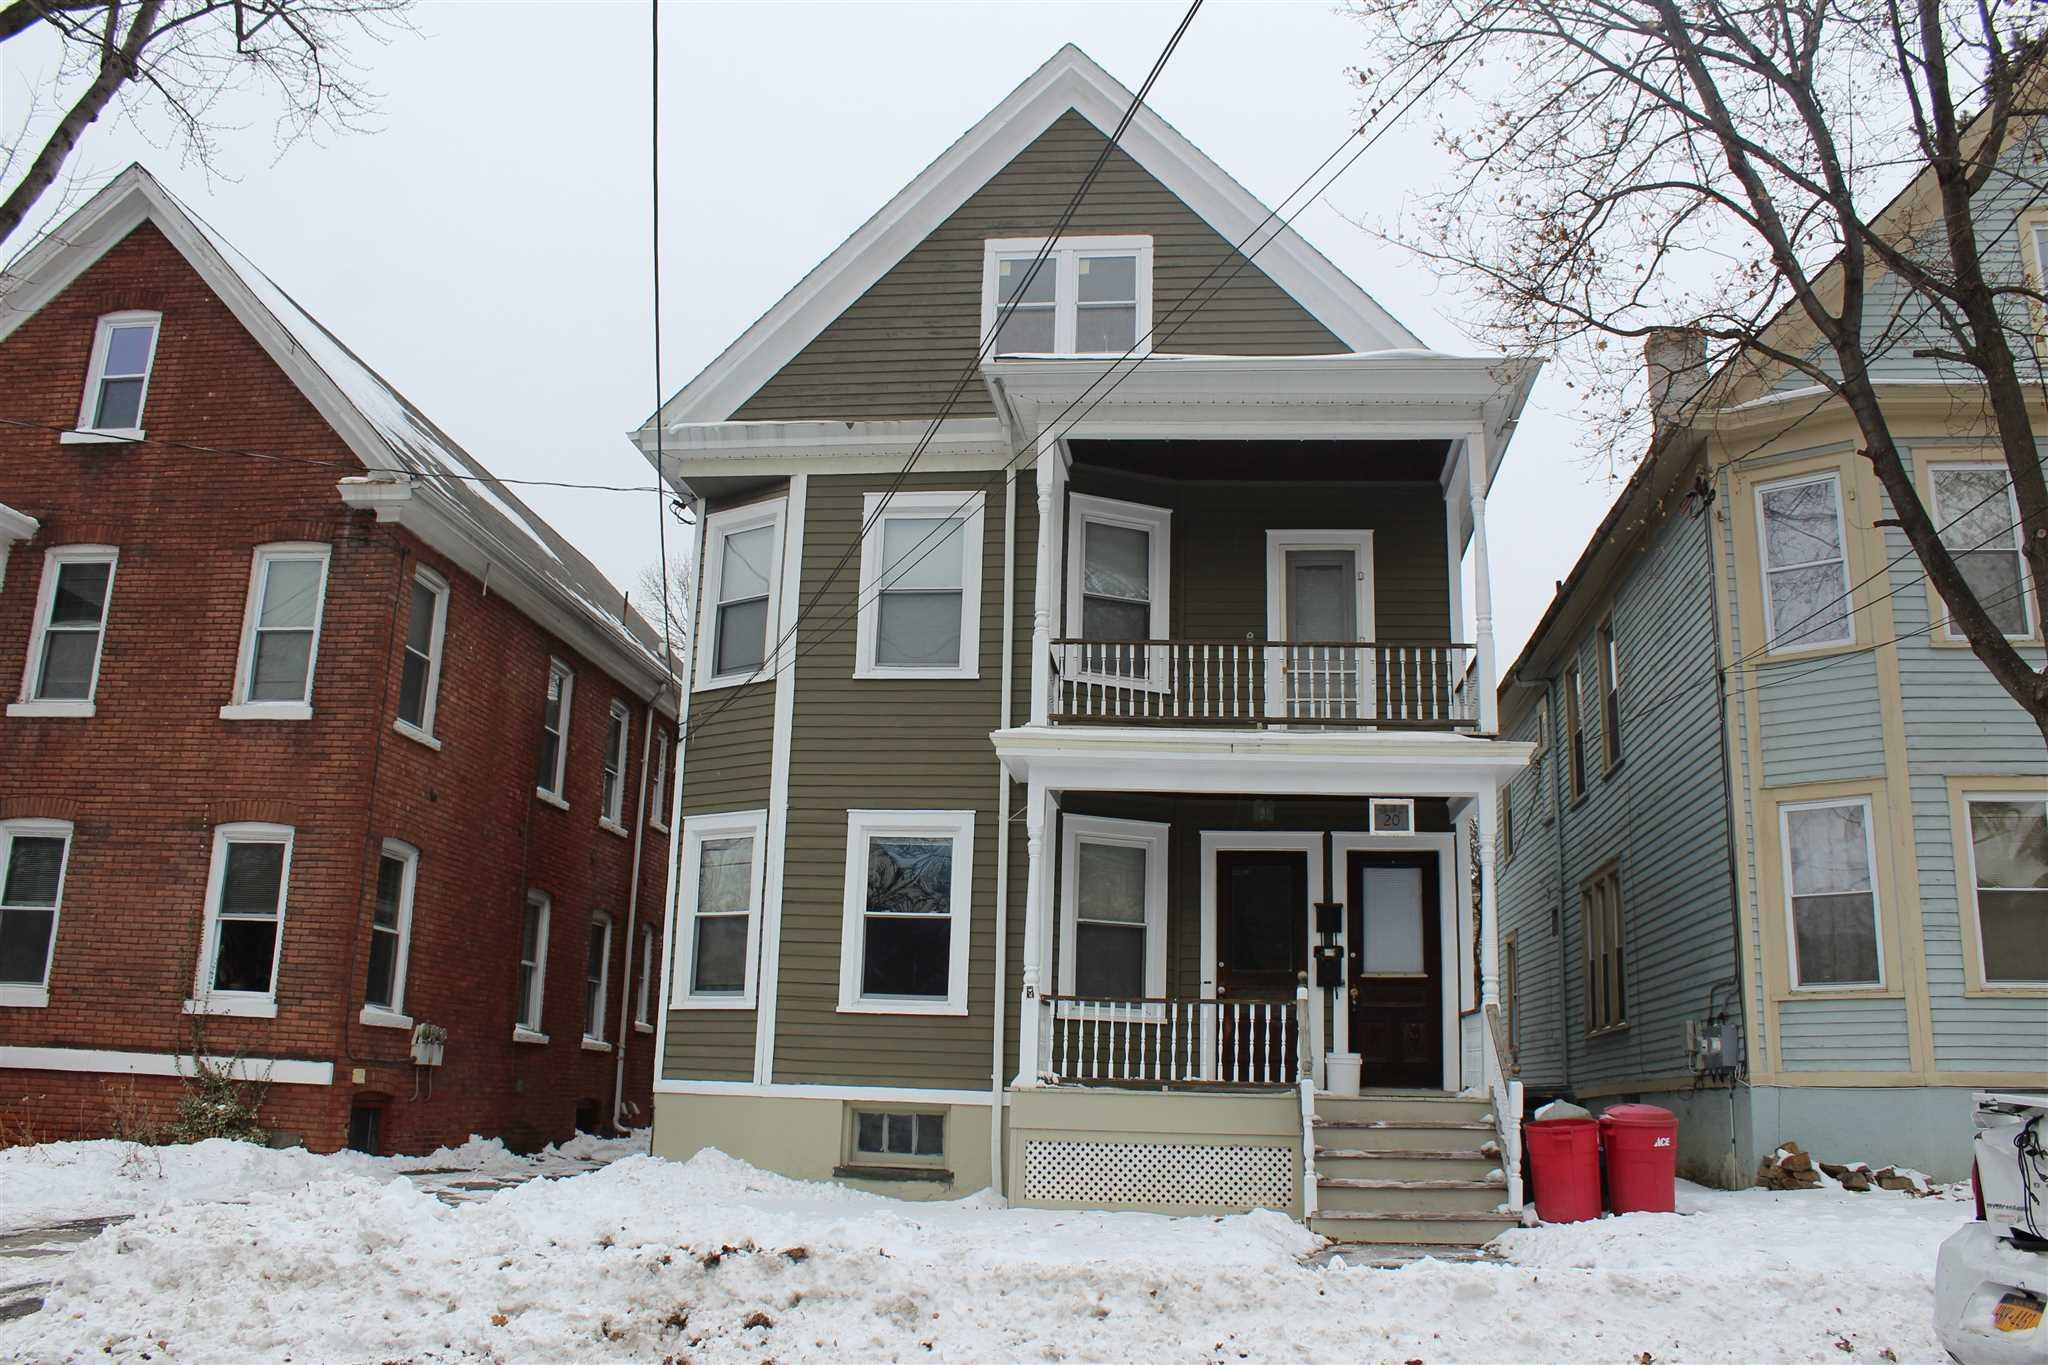 Single Family Home for Rent at 20 DEAN Place 20 DEAN Place Poughkeepsie, New York 12601 United States